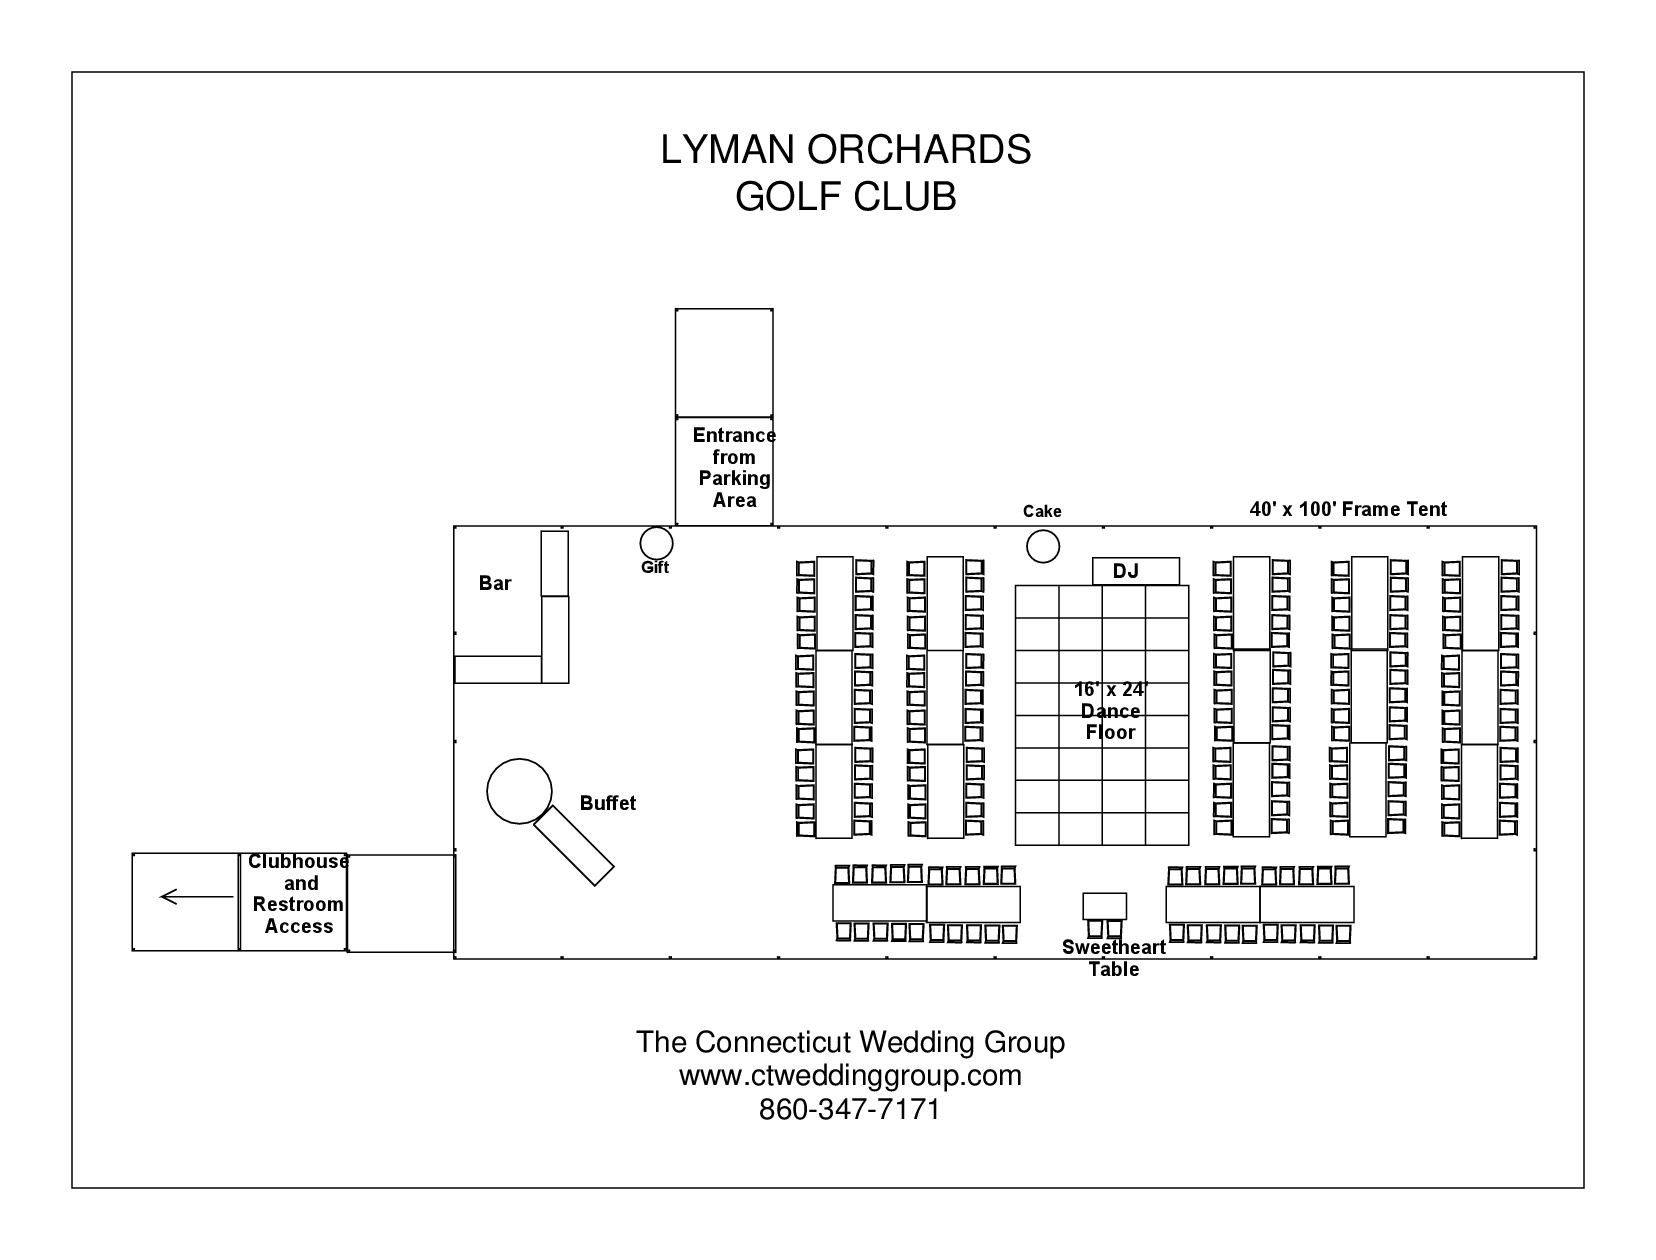 117_11393_Lyman-Orchards-Golf-Club-Farm-Table-Floor-Plan-190-Guests-001